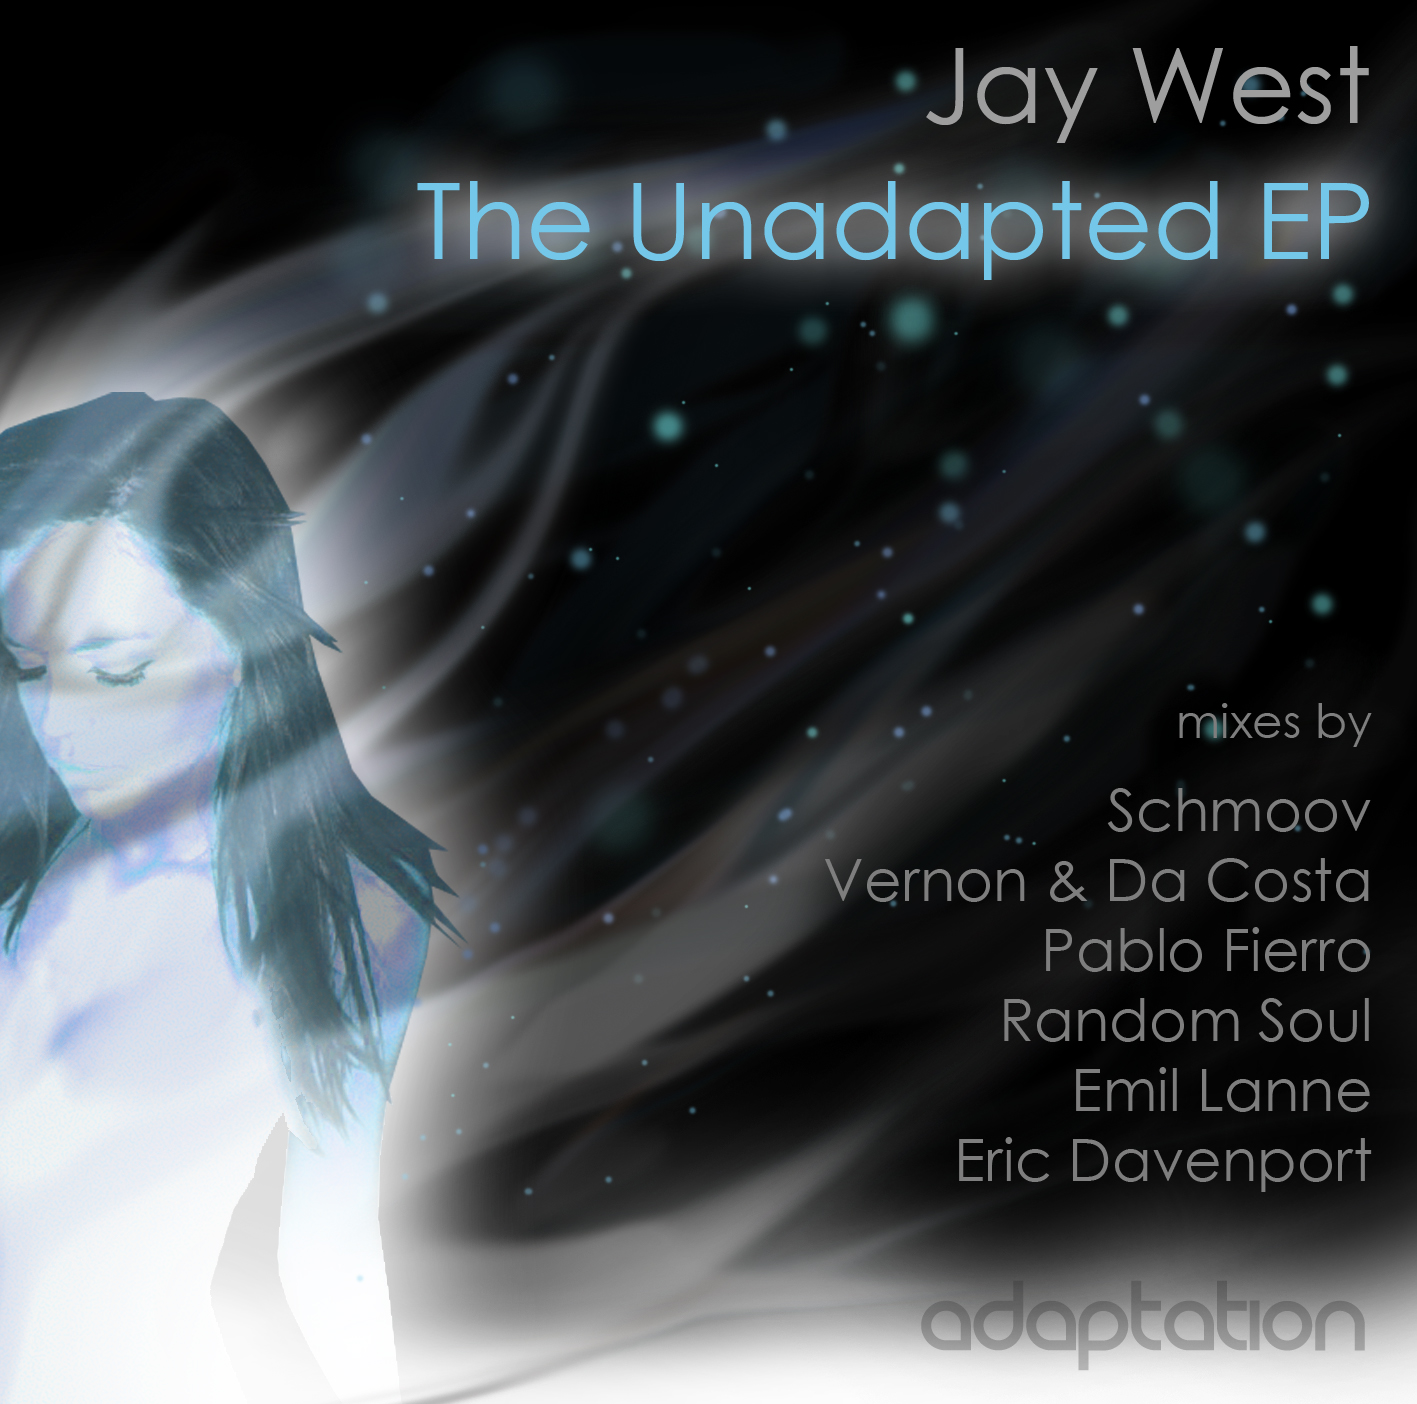 Jay West – The Unadapted EP